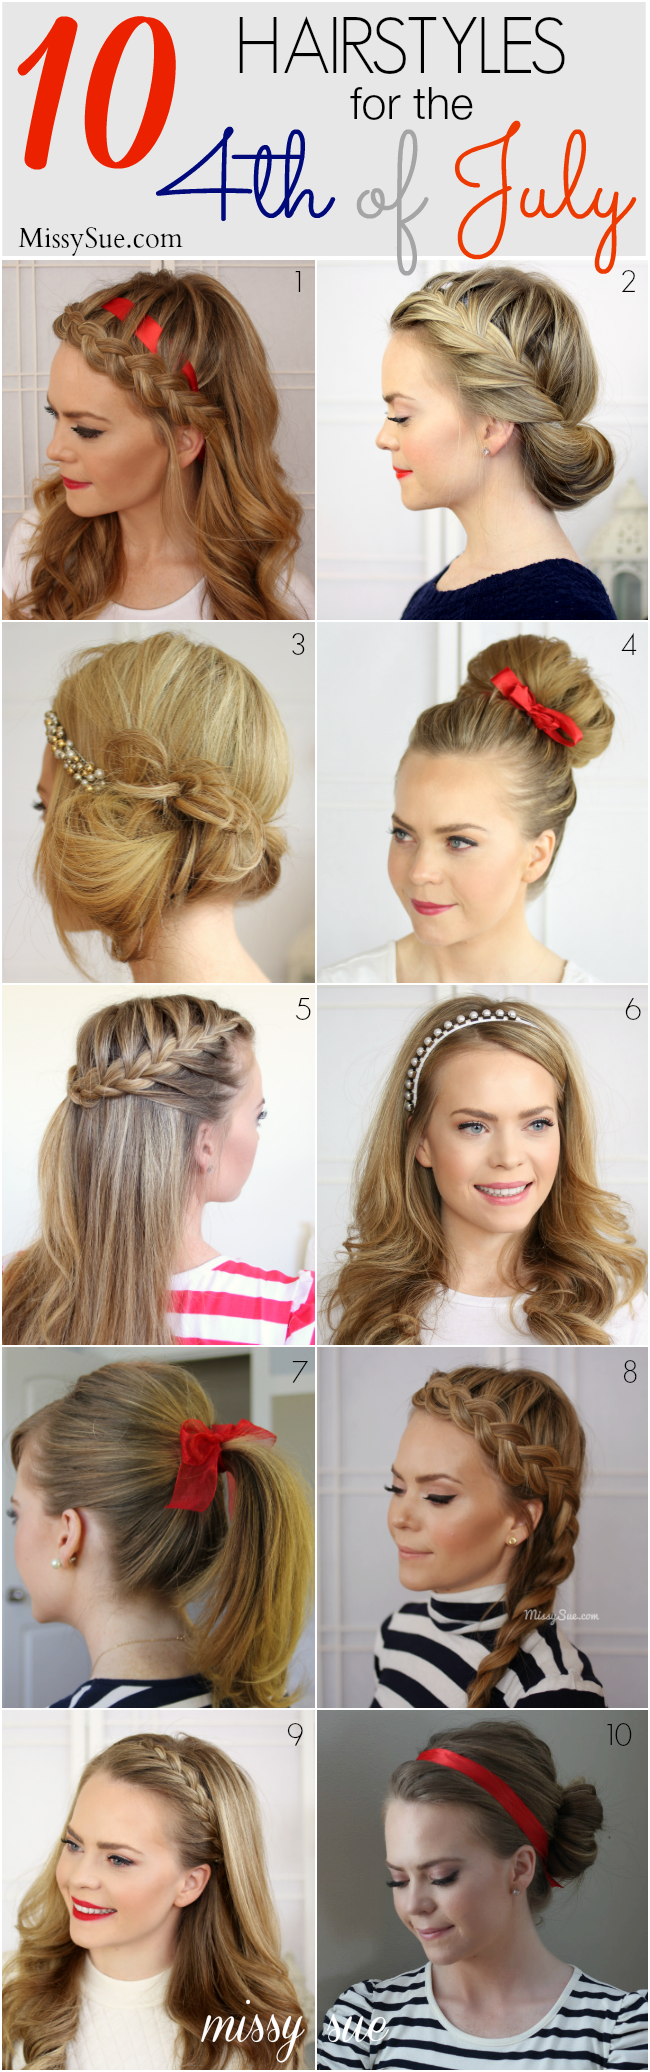 10 Hairstyles For The 4th Of July Hair Styles Long Hair Styles Beautiful Hair